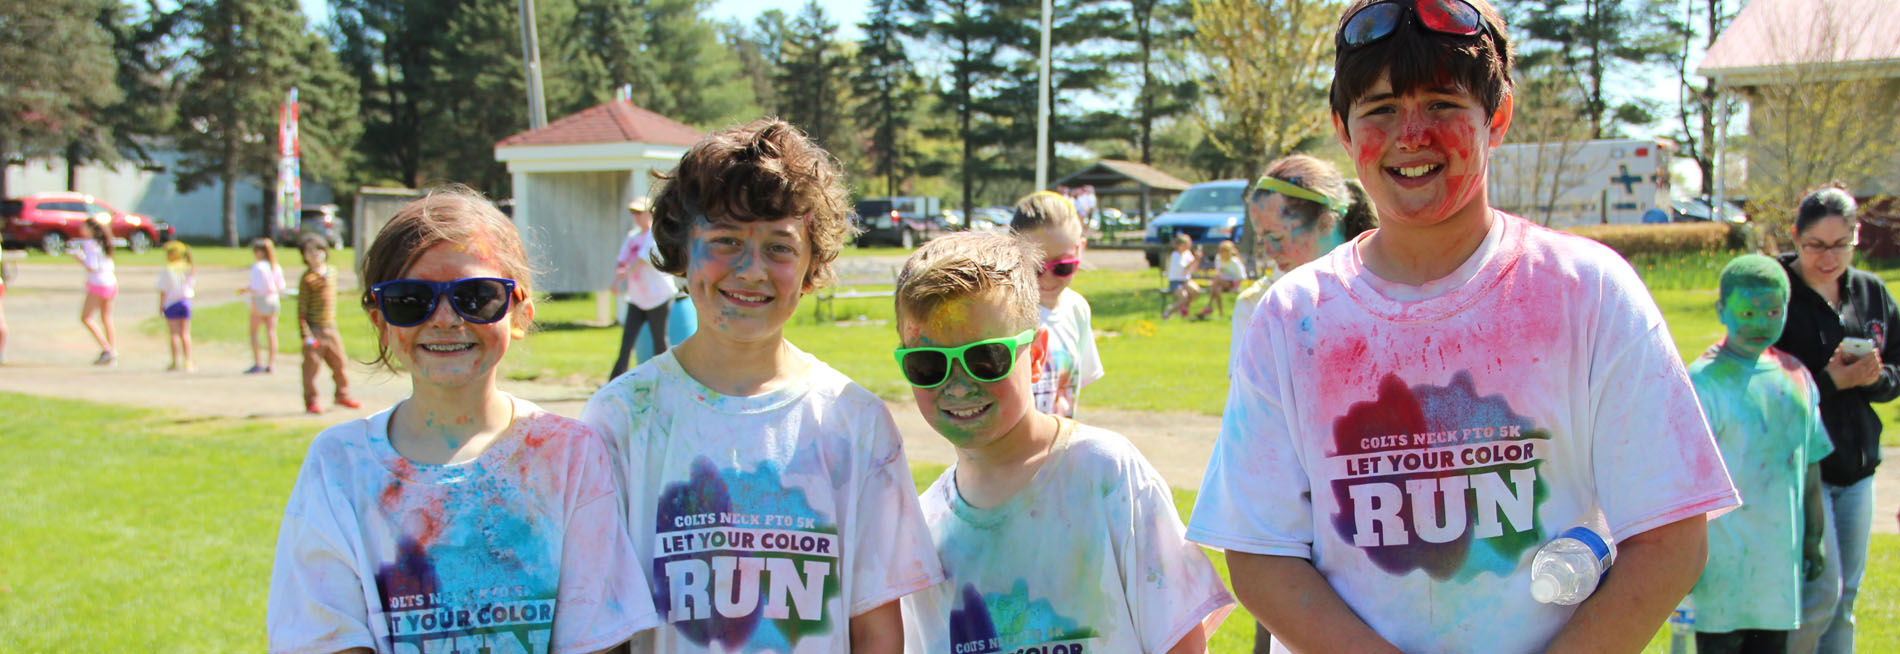 2015 Let Your Color Run Kids